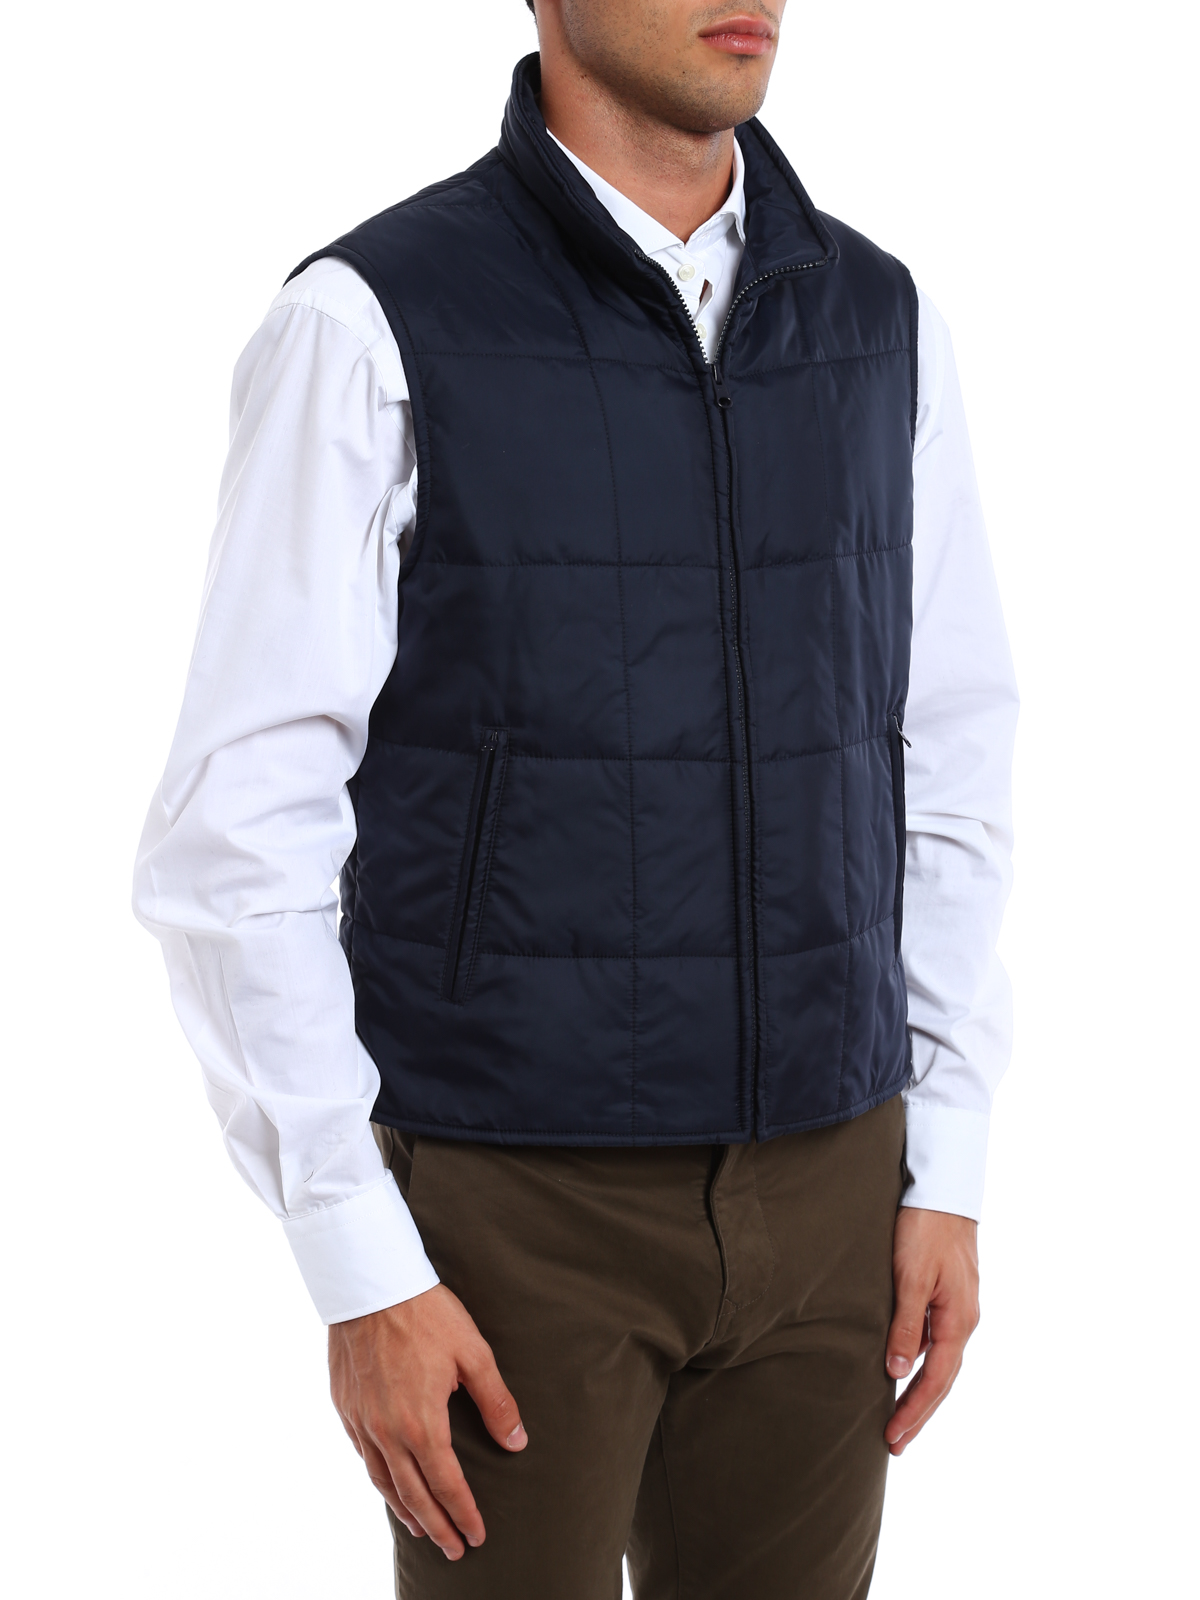 finest selection 52a40 0f8c8 Fay - Giacca con gilet staccabile - giacche casual ...